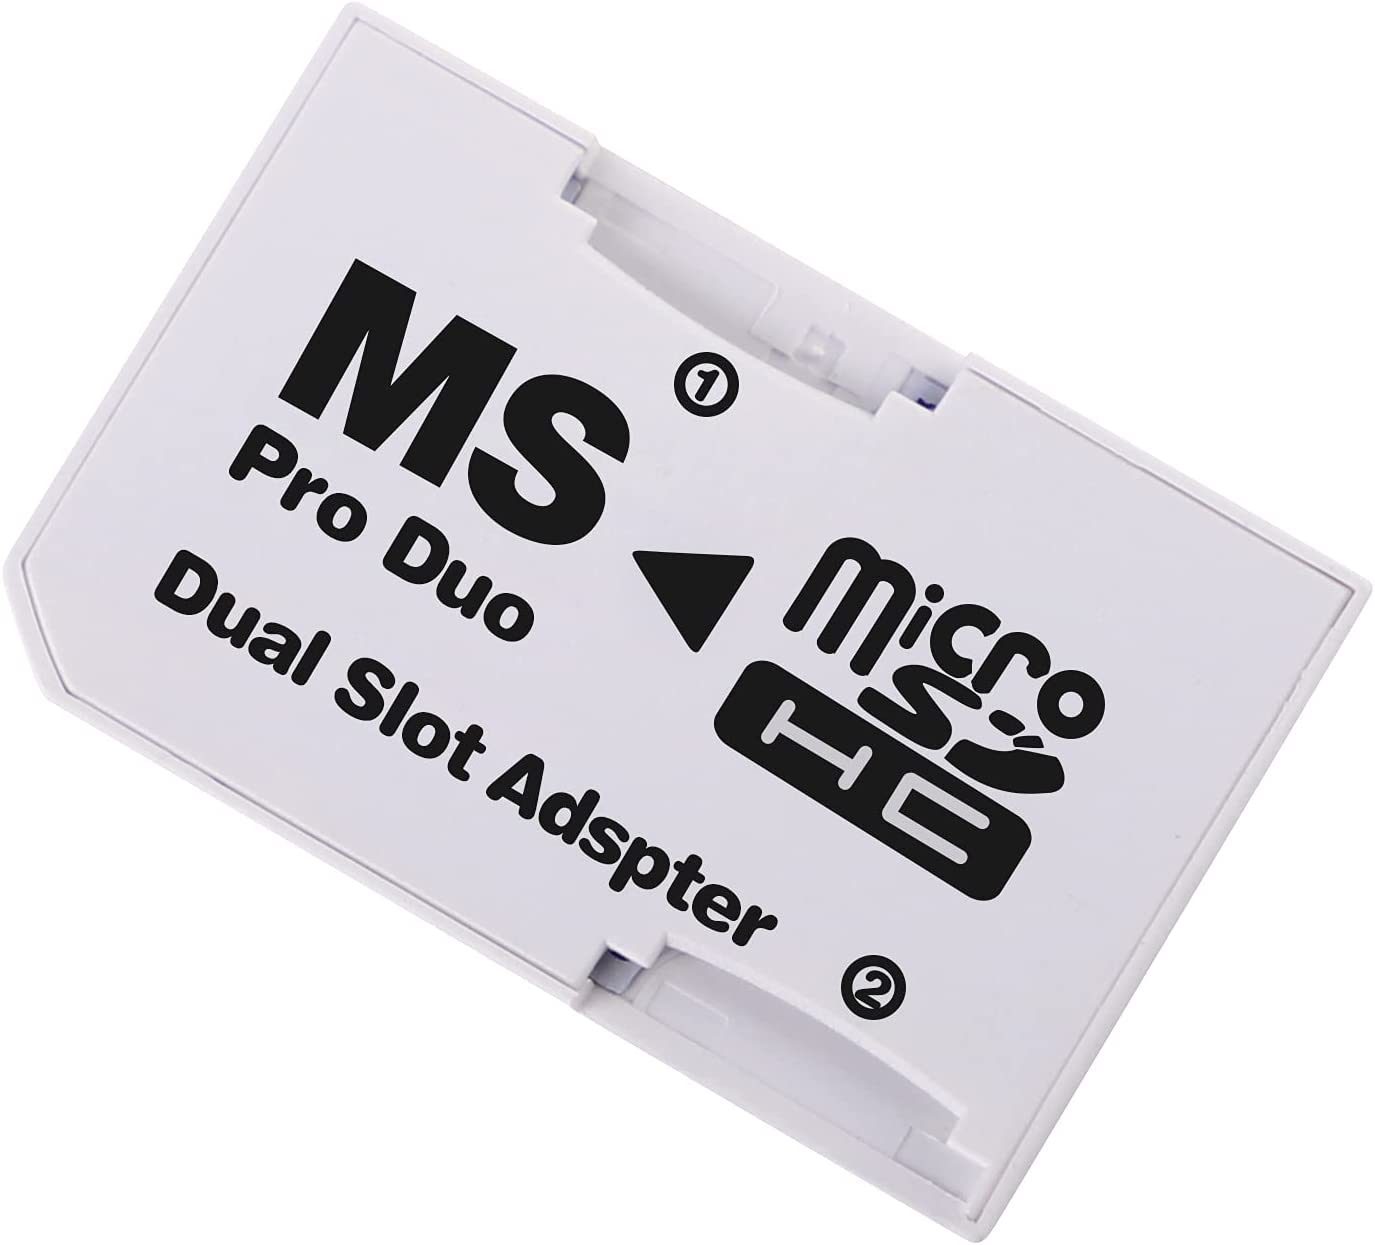 Cuziss Dual Slot MicroSD Micro SDHC Adapter Duo Pro Memory Stick Adapter for PSP Sony